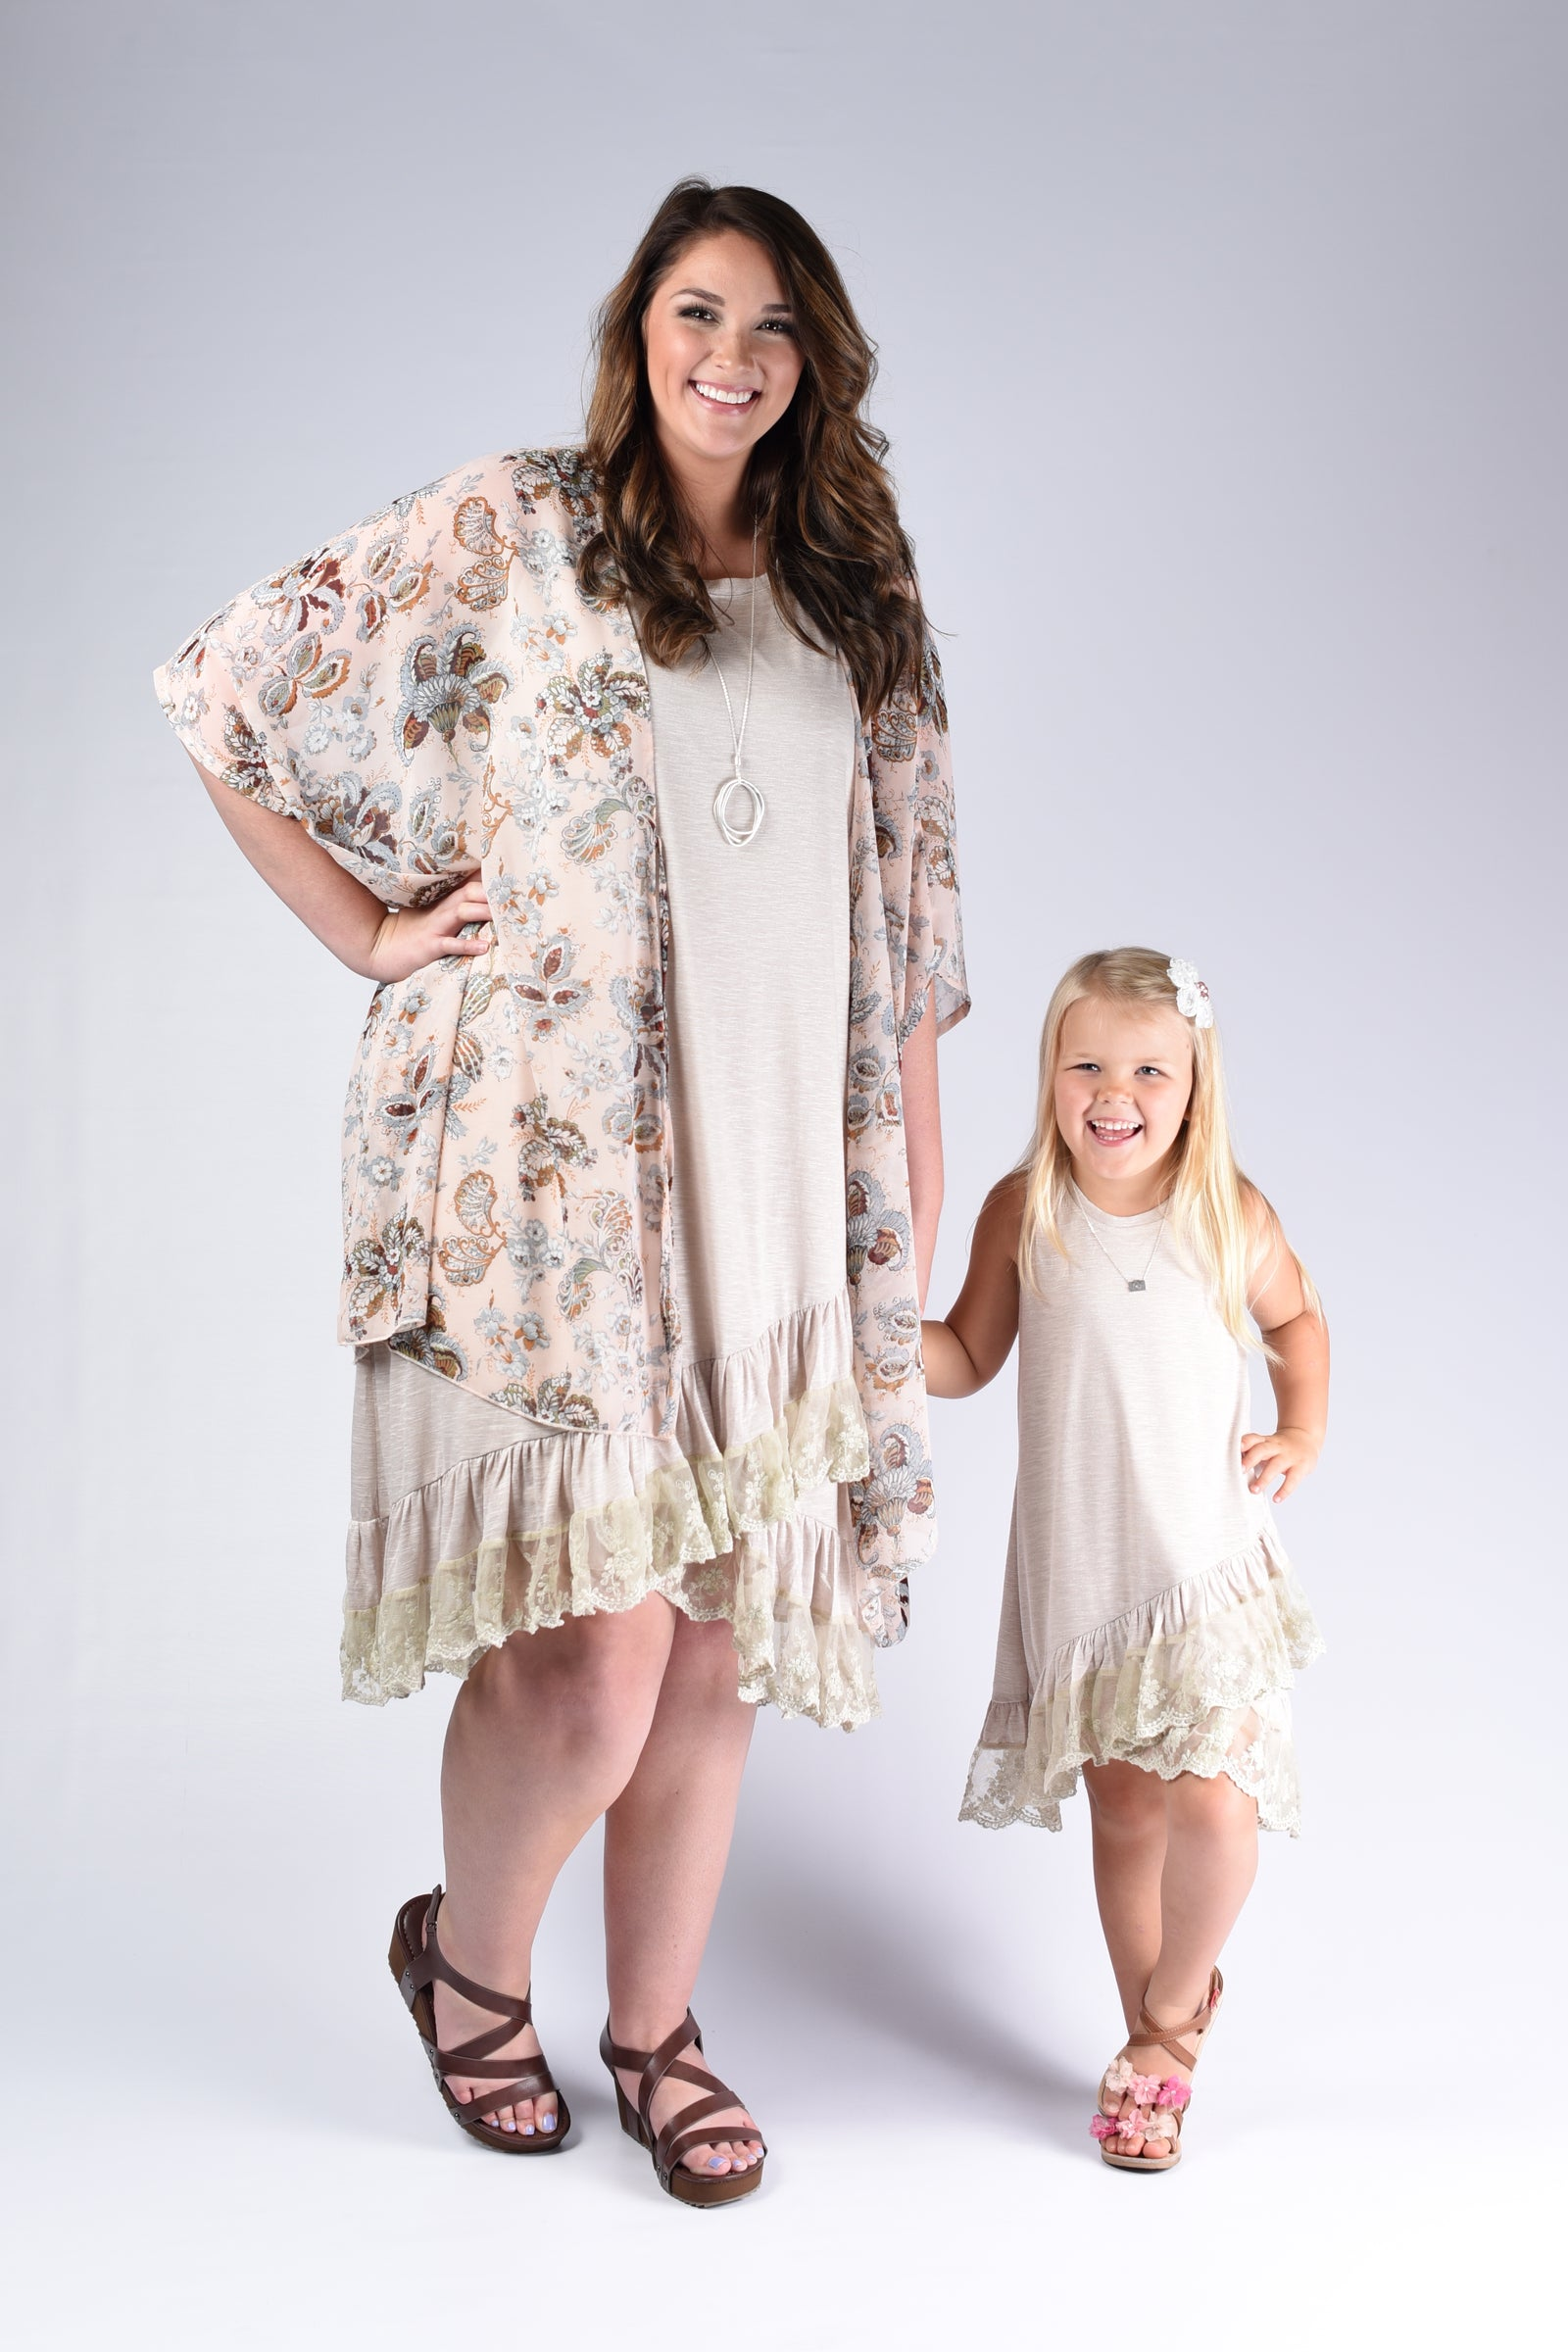 ae31443a143 Light Taupe Ruffle Mommy   Me Outfit - www.mycurvystore.com - Curvy  Boutique ...